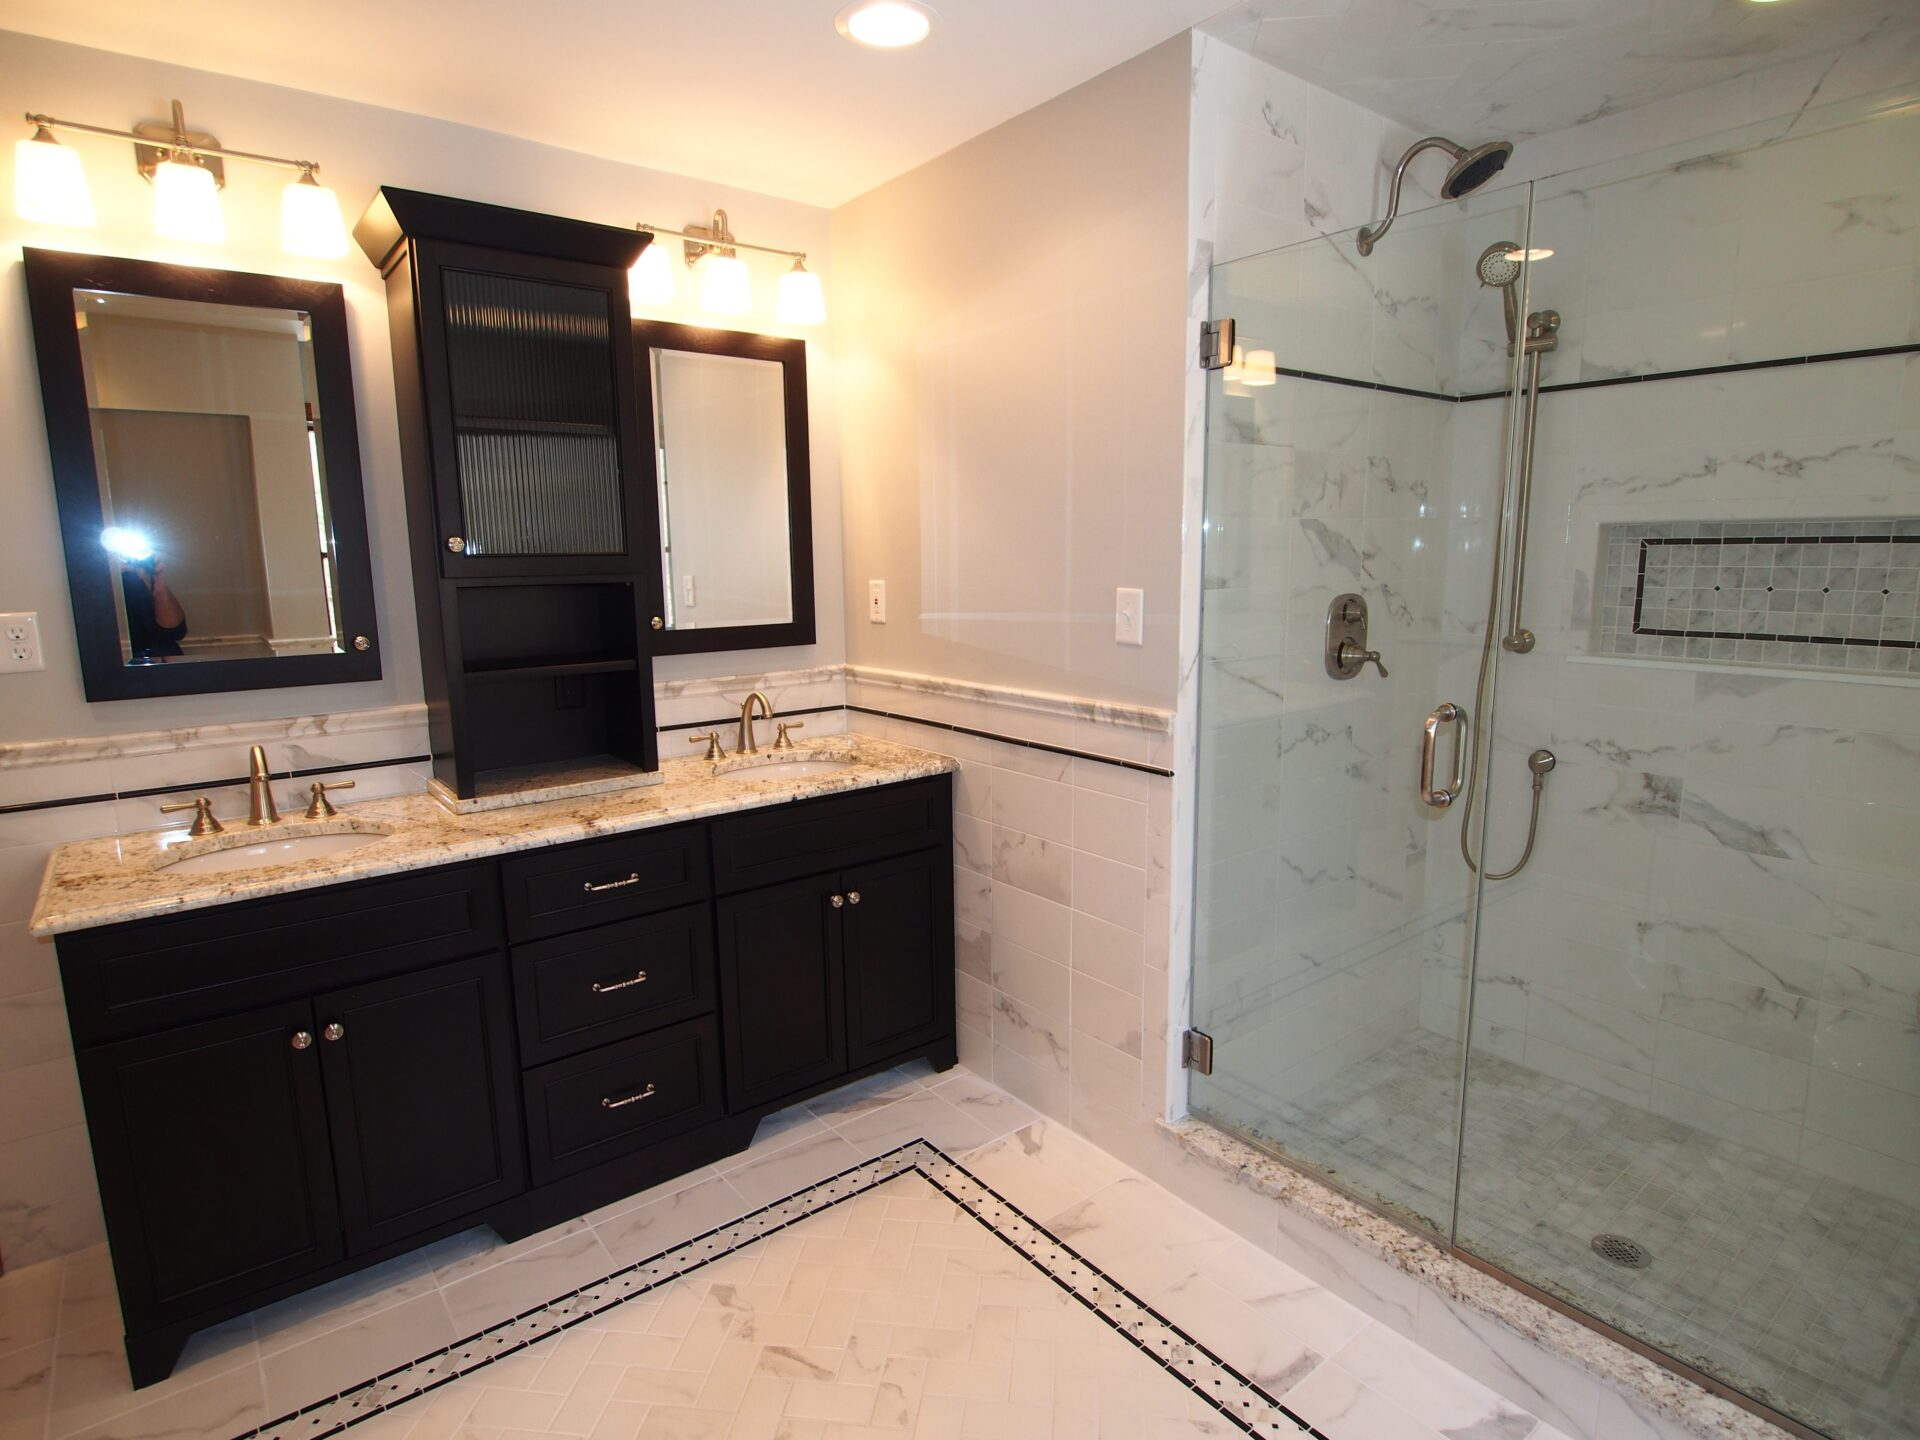 Bathroom Remodeling & Renovation Contractor - Annandale, NJ